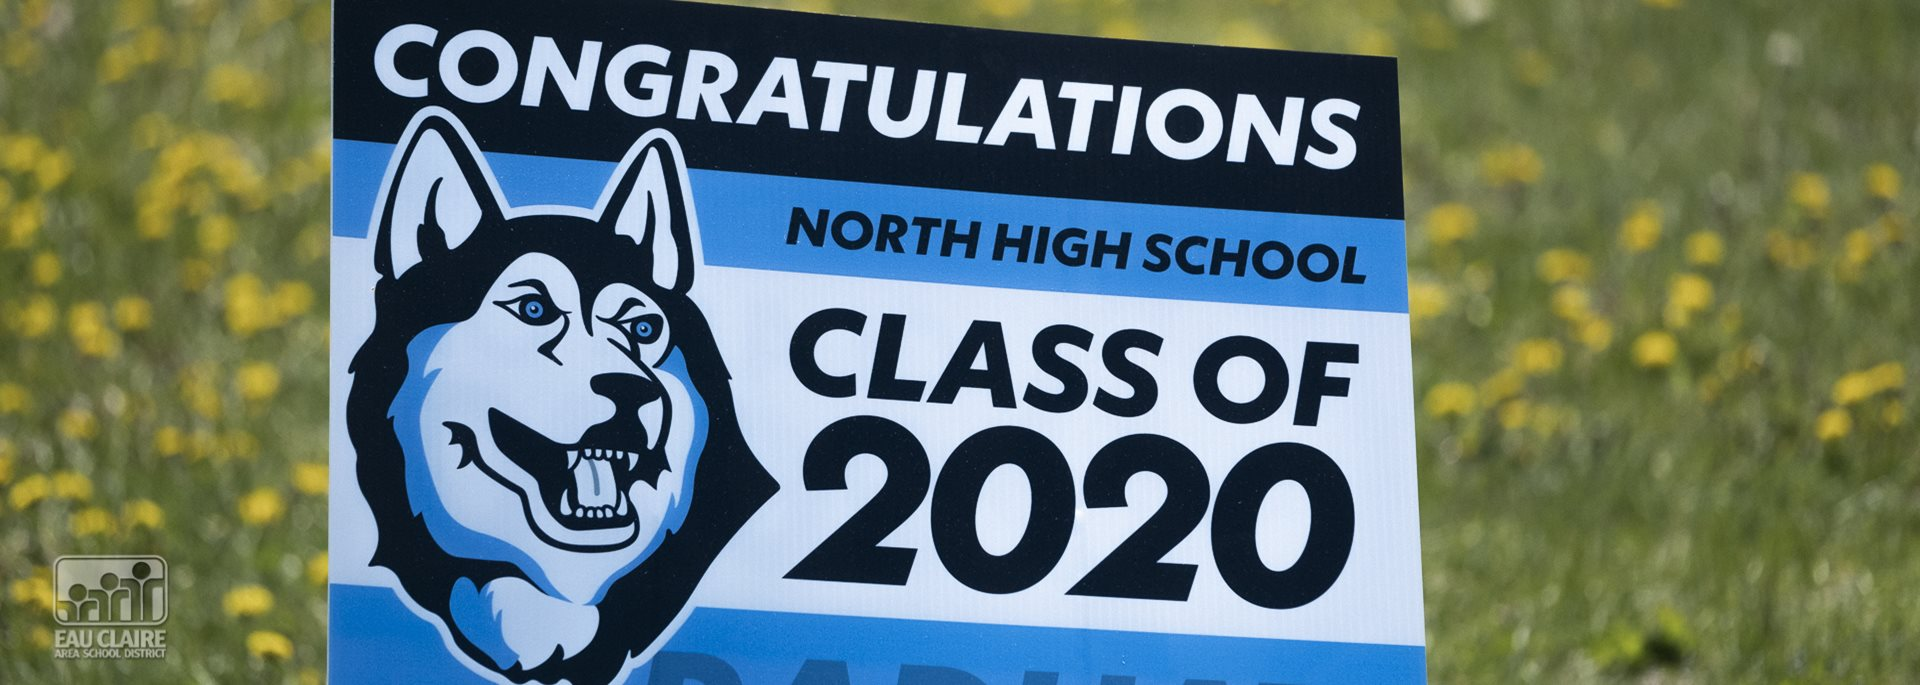 Blue and white sign with wording of North High Class of 2020